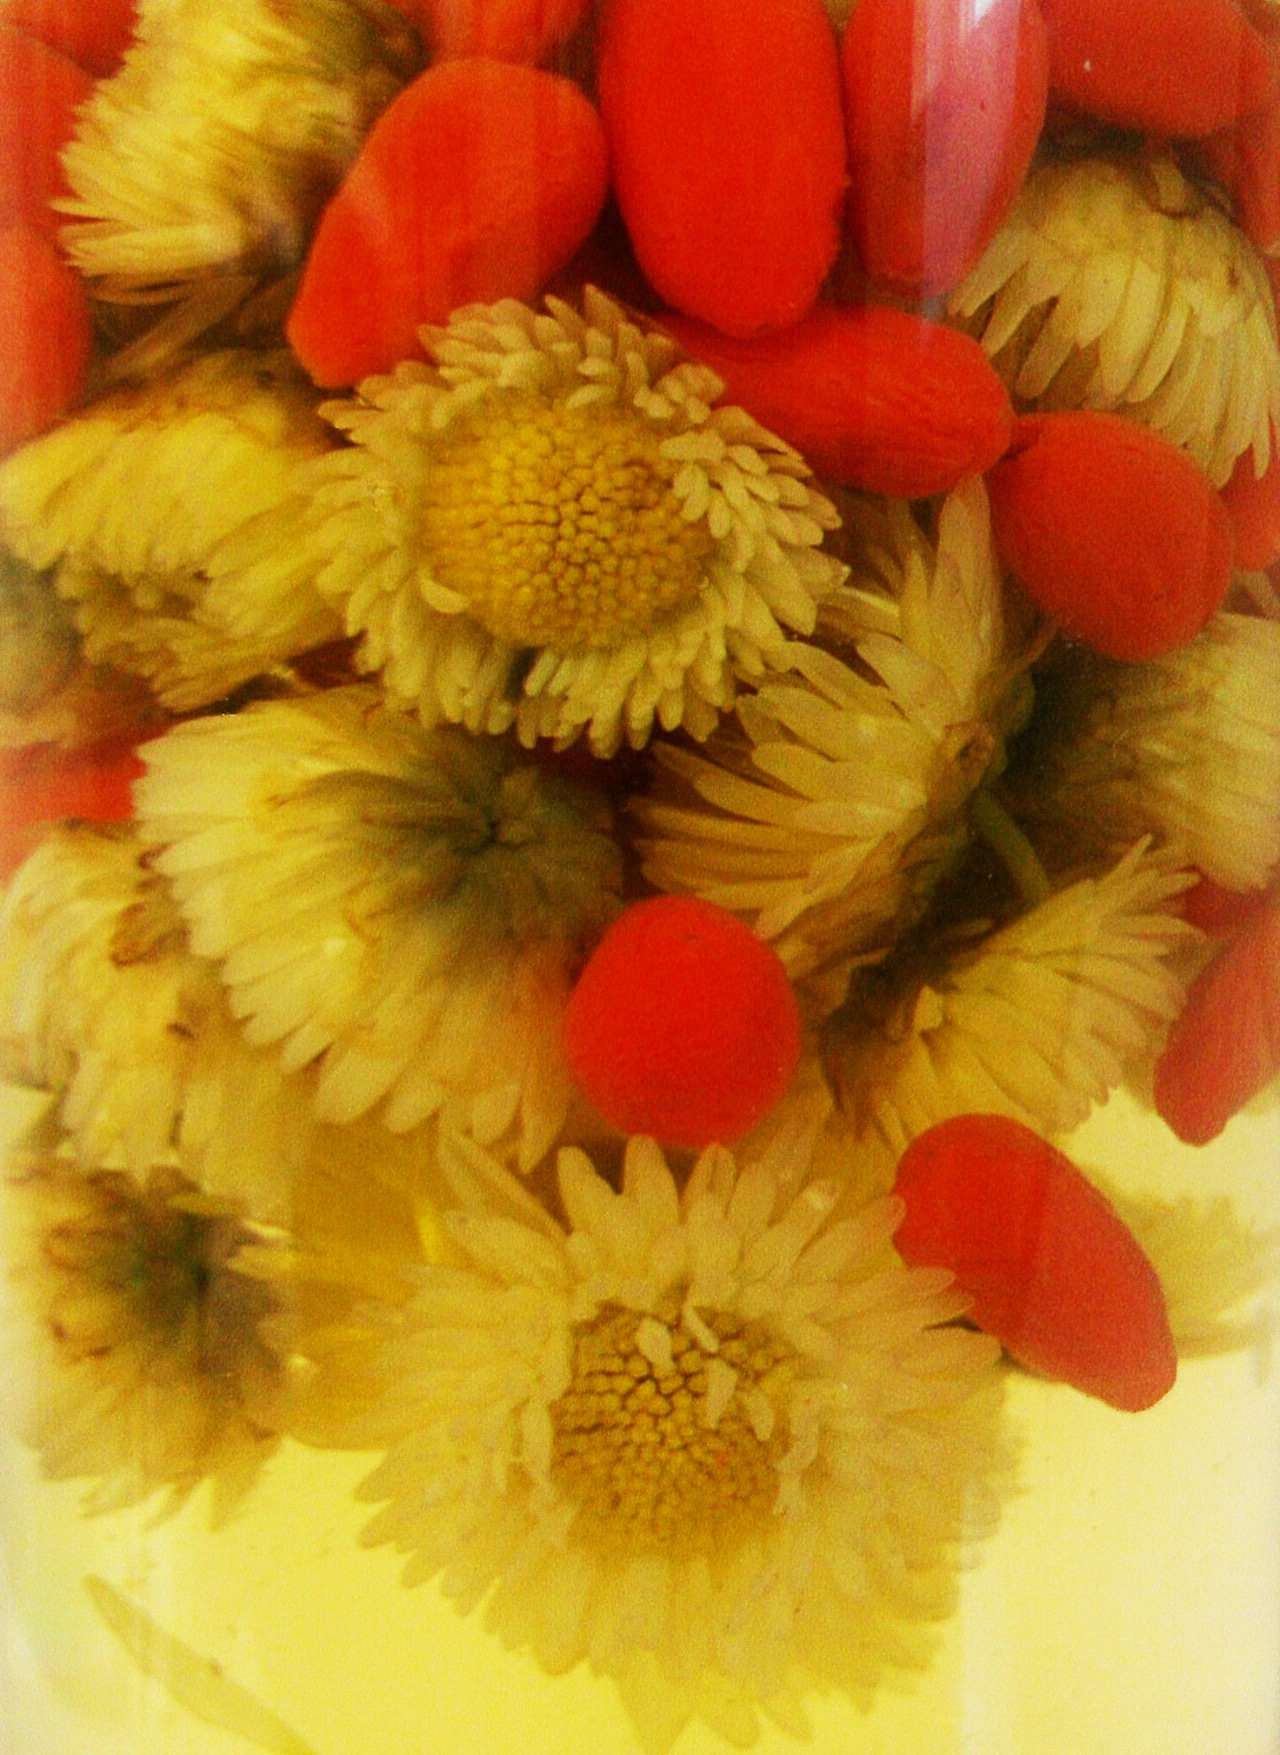 JU HUA or CHRYSANTHEMUM FLOWER